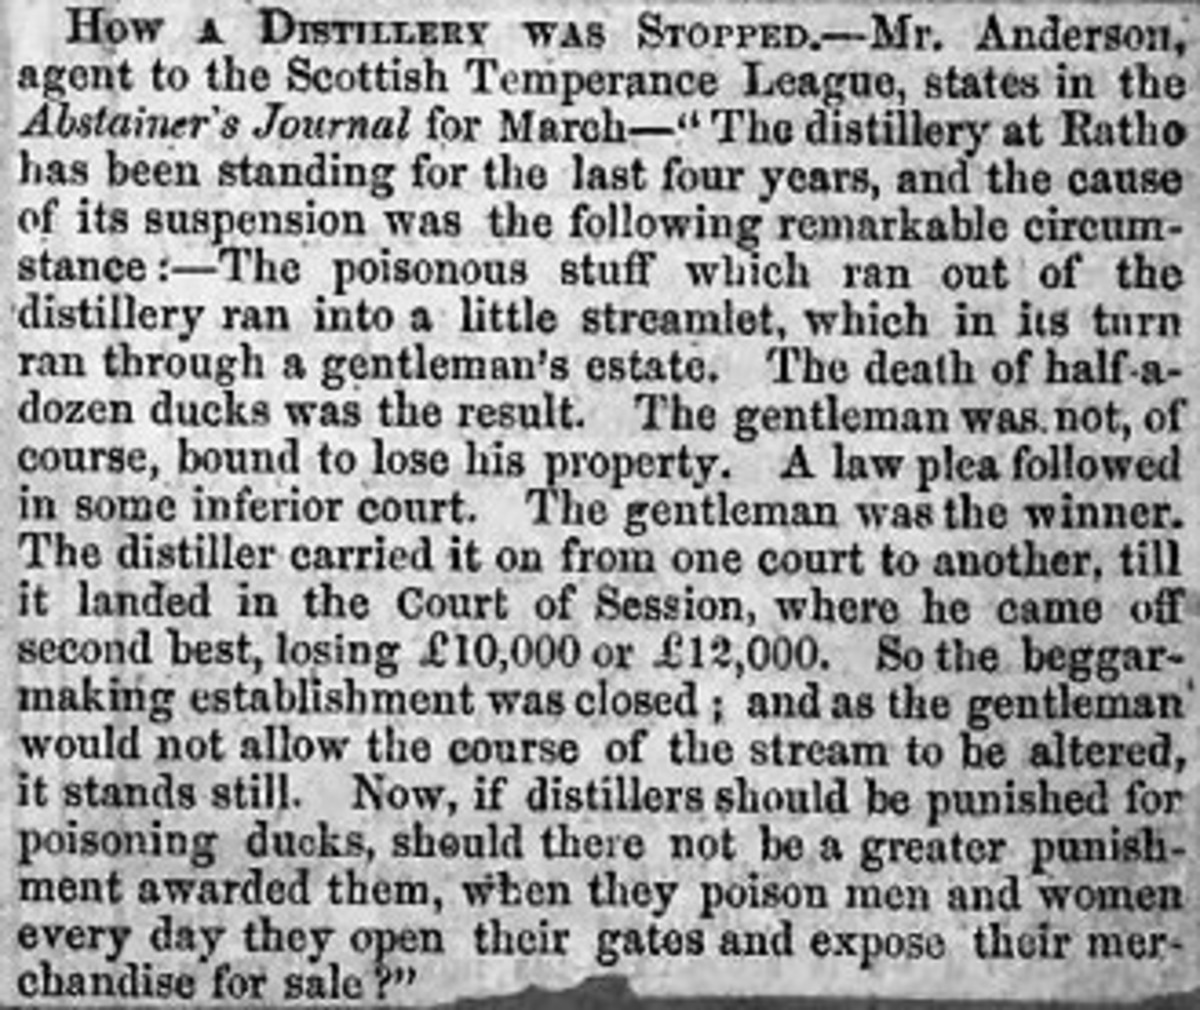 How A Distillery was stopped in Scotland by the Scottish Temperance League